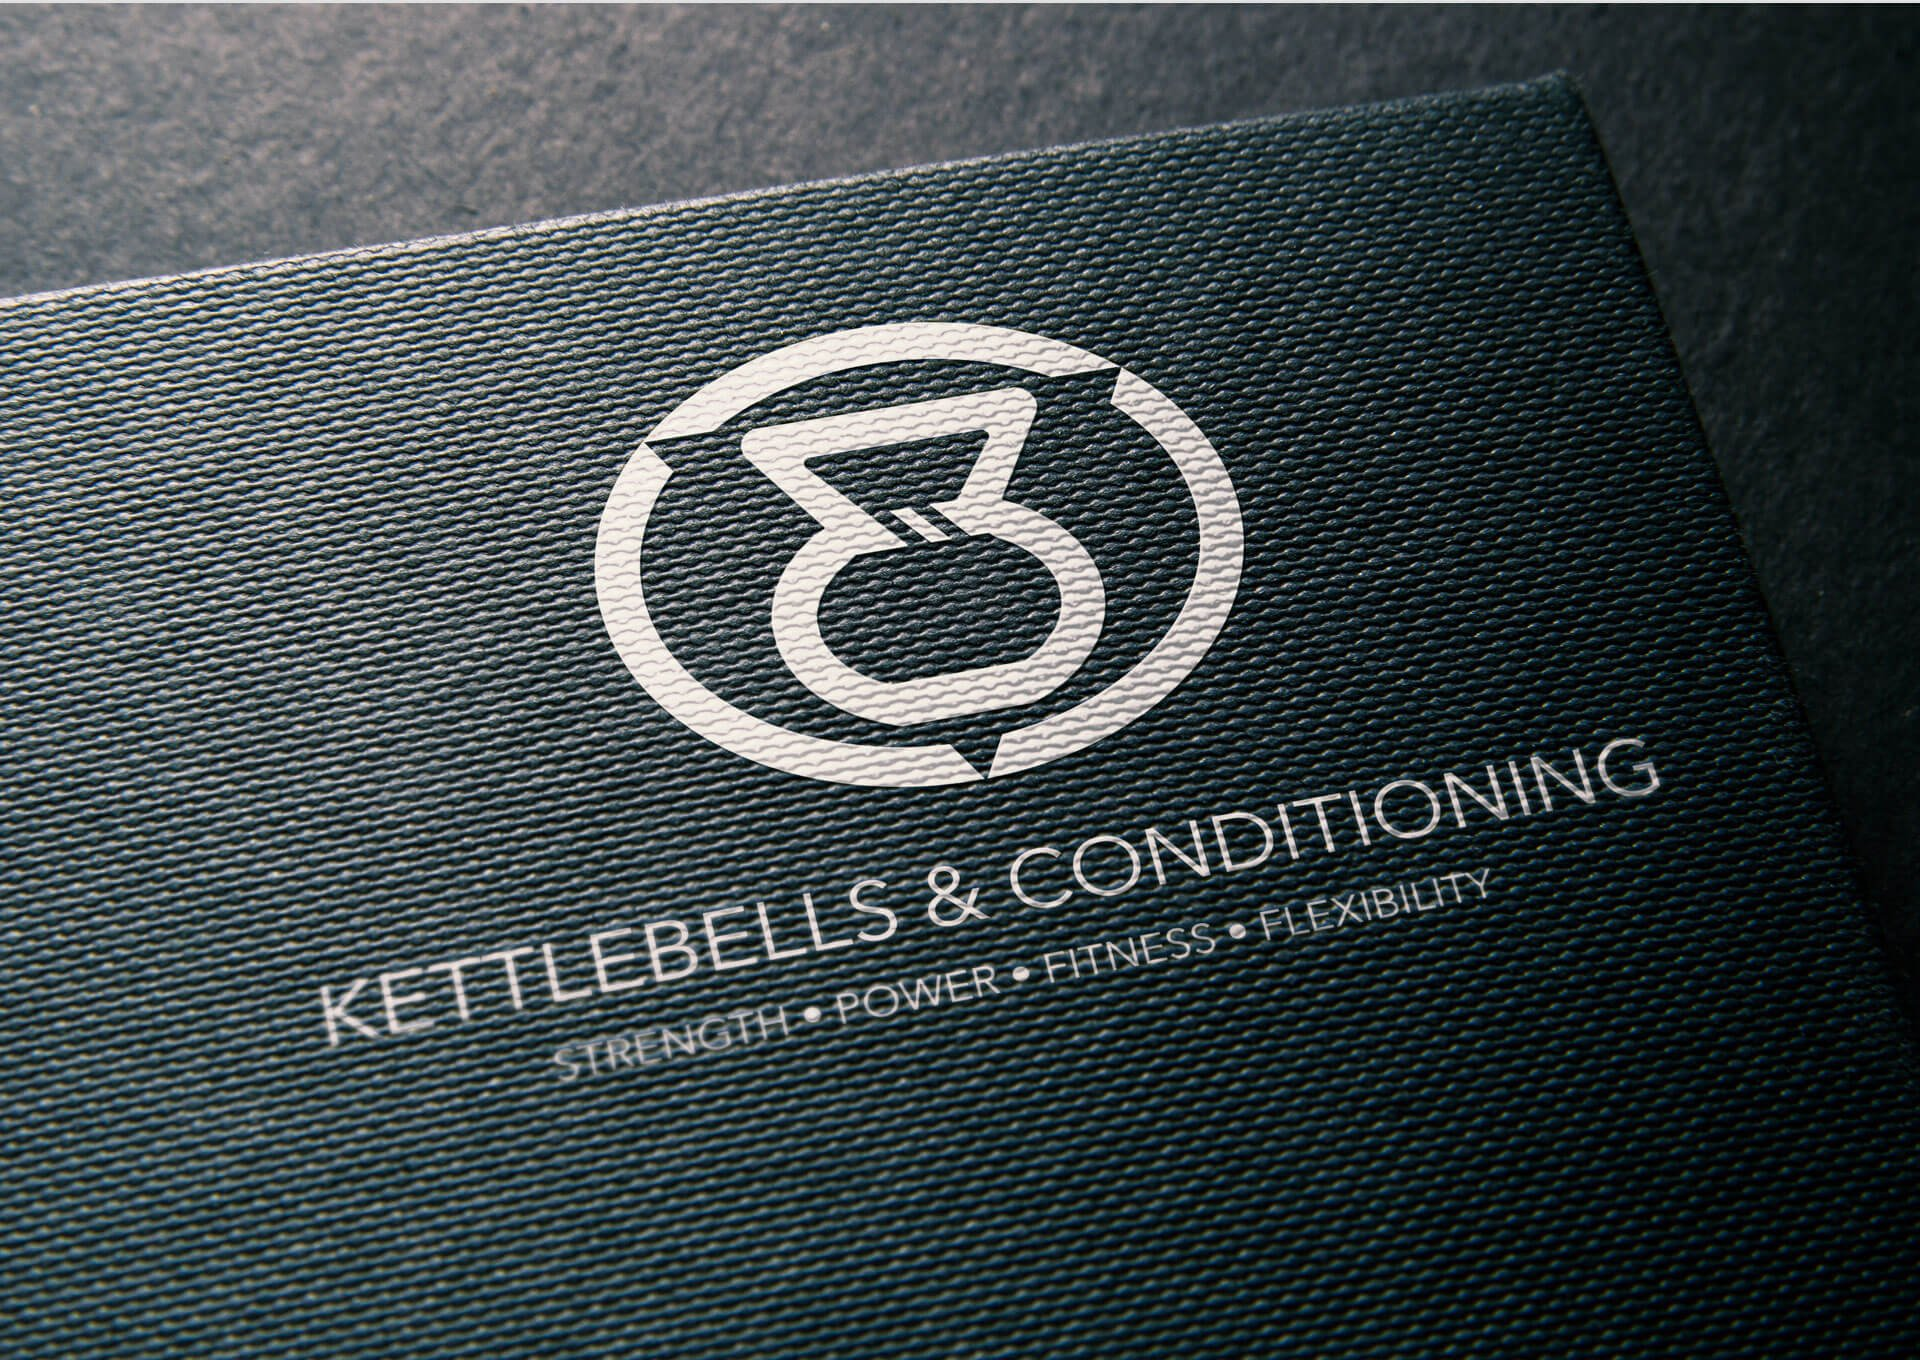 Kettlebells & Conditioning Logo Design